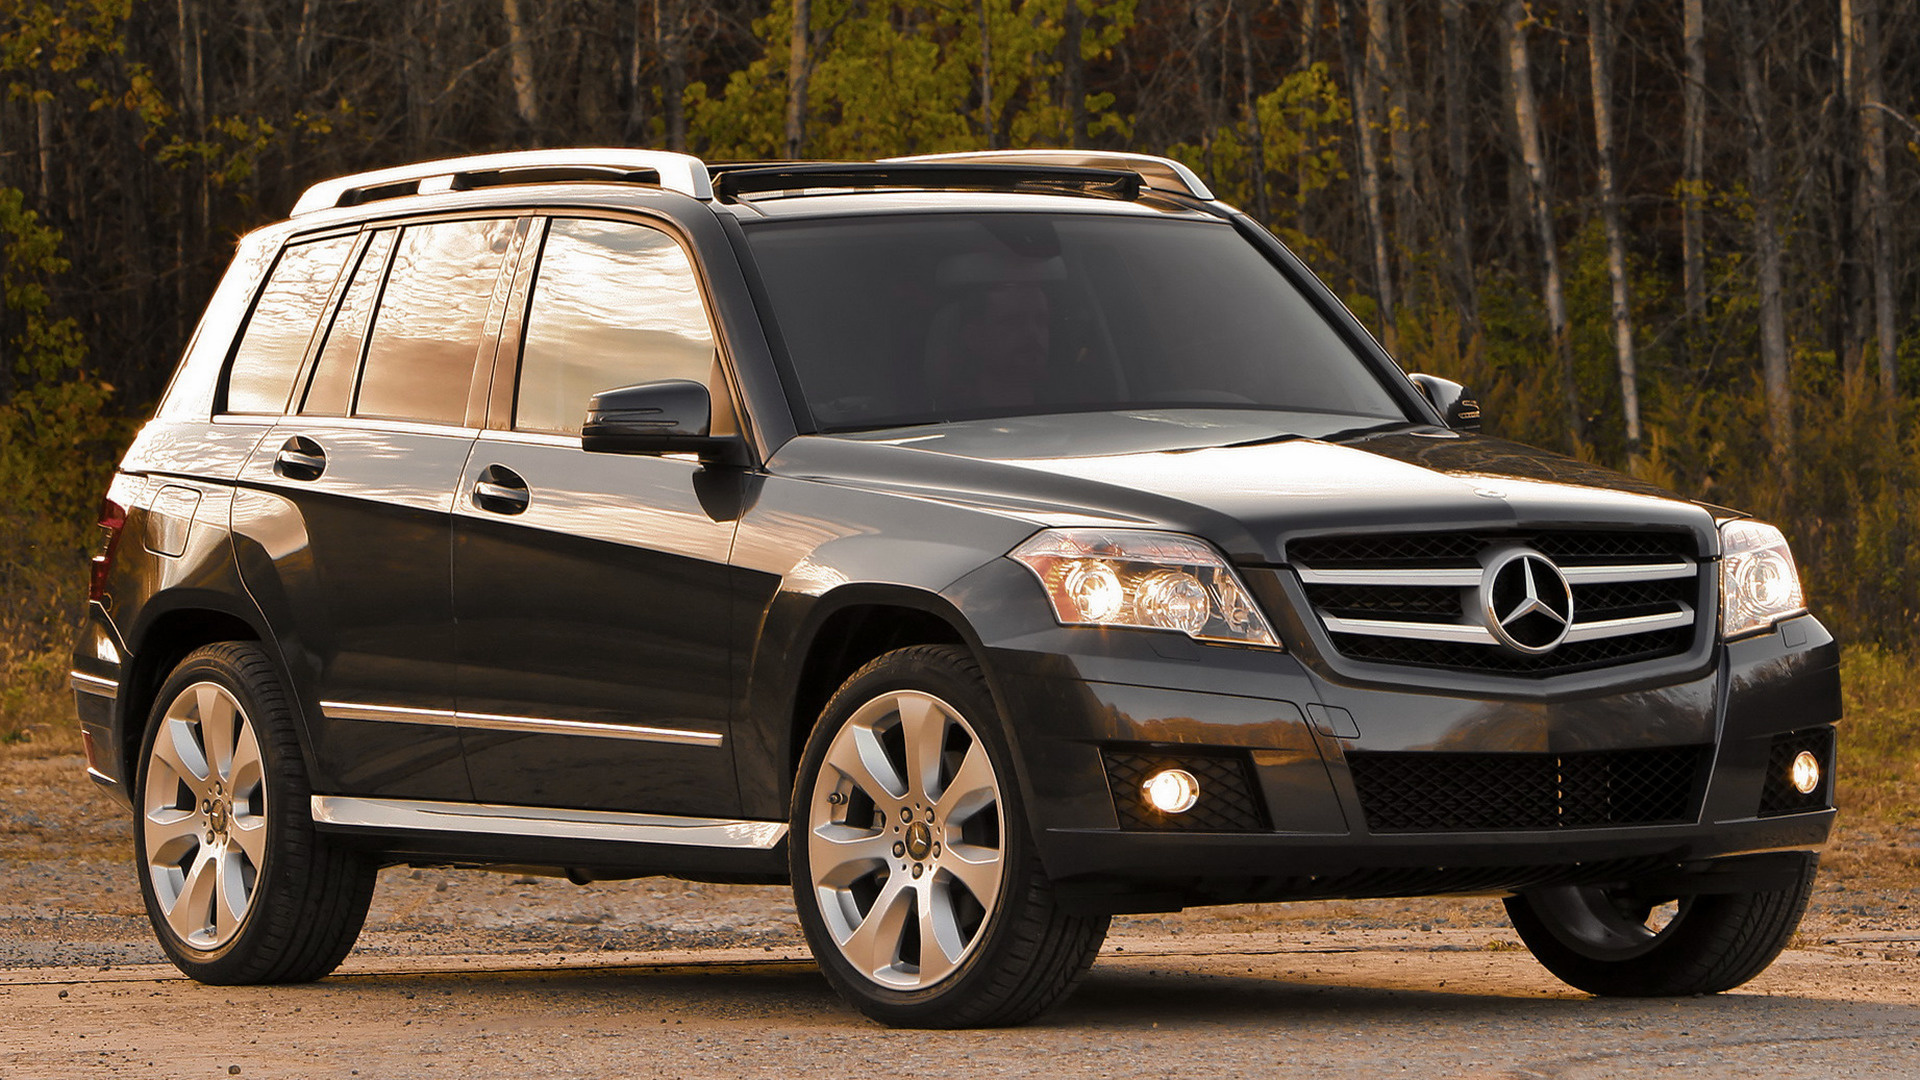 2010 mercedes benz glk class us wallpapers and hd images car pixel. Black Bedroom Furniture Sets. Home Design Ideas